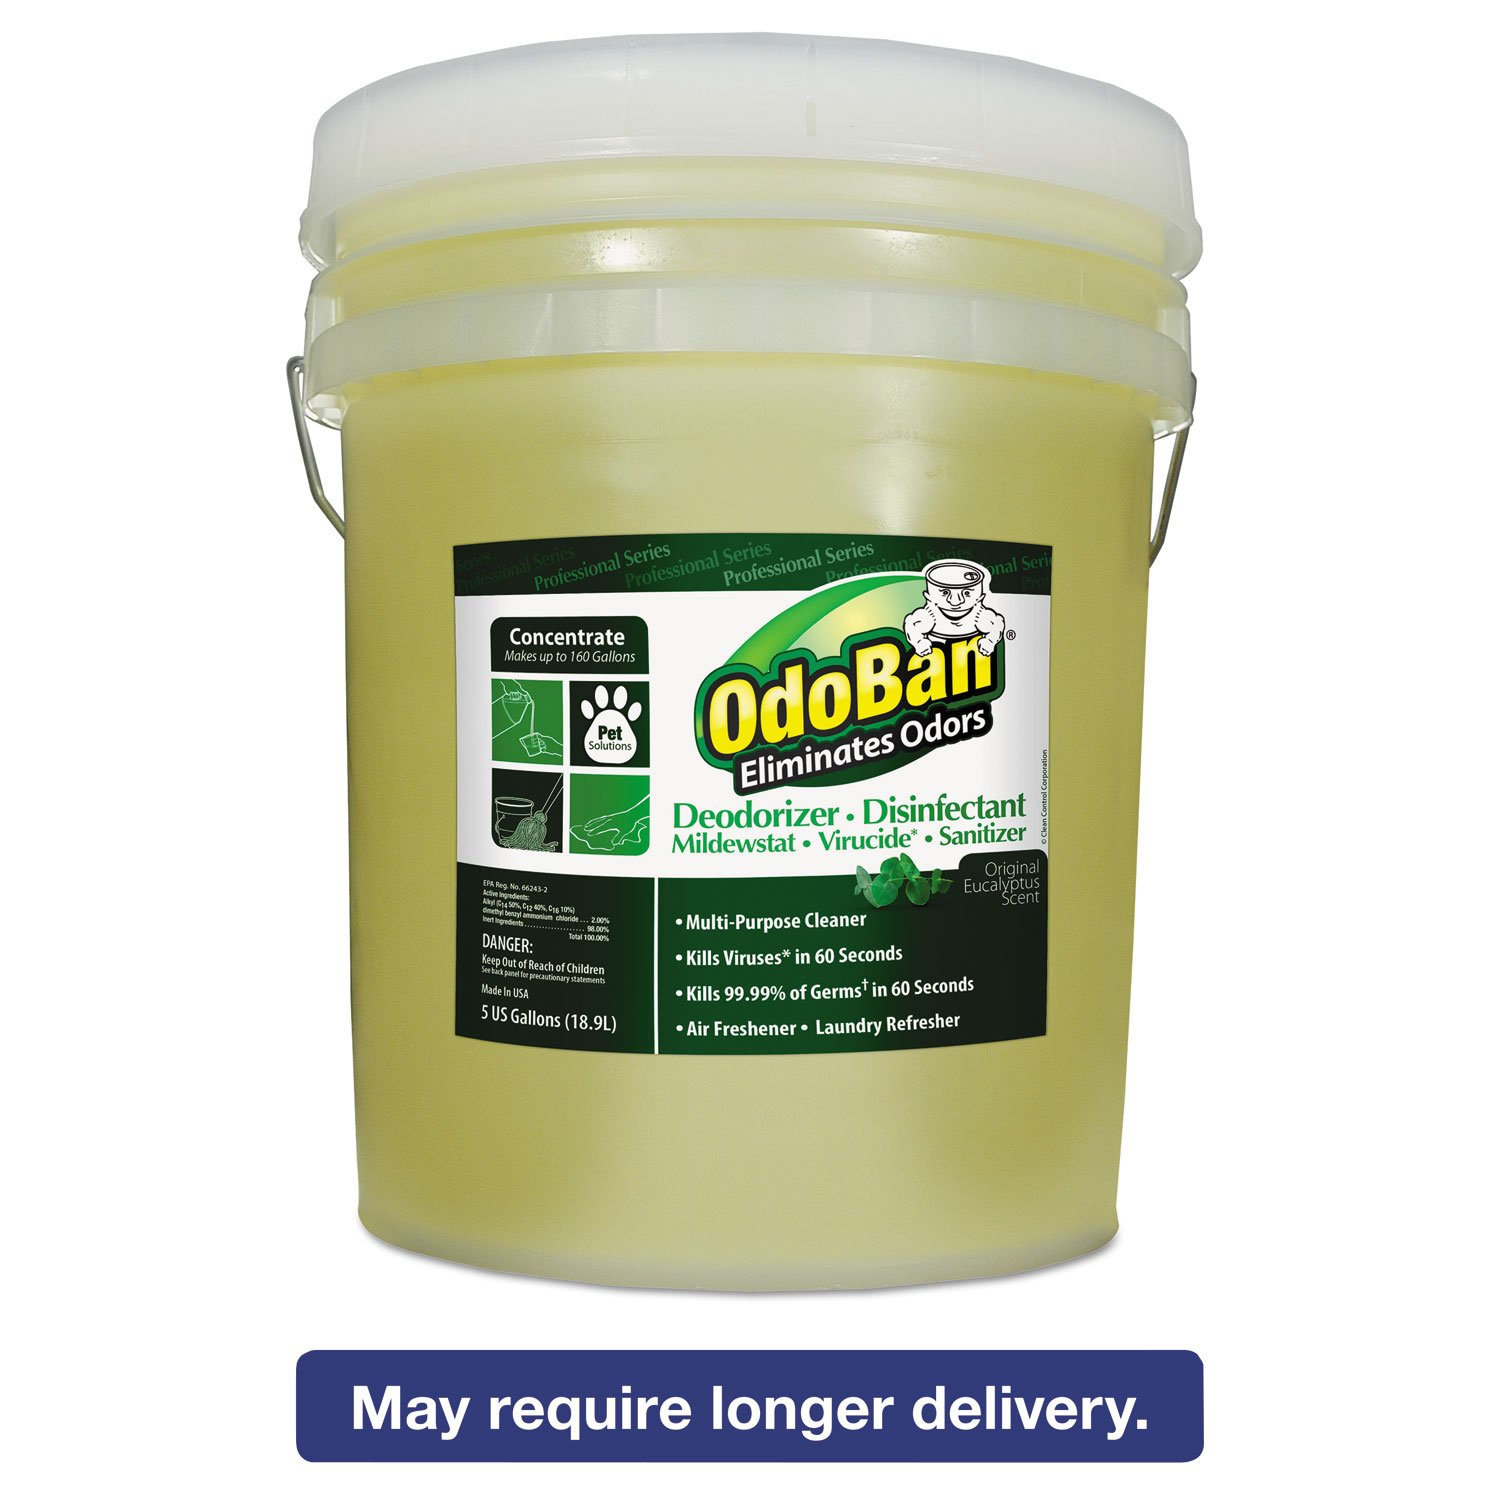 OdoBan 9110625G Concentrated Odor Eliminator, Eucalyptus, 5 gal Pail